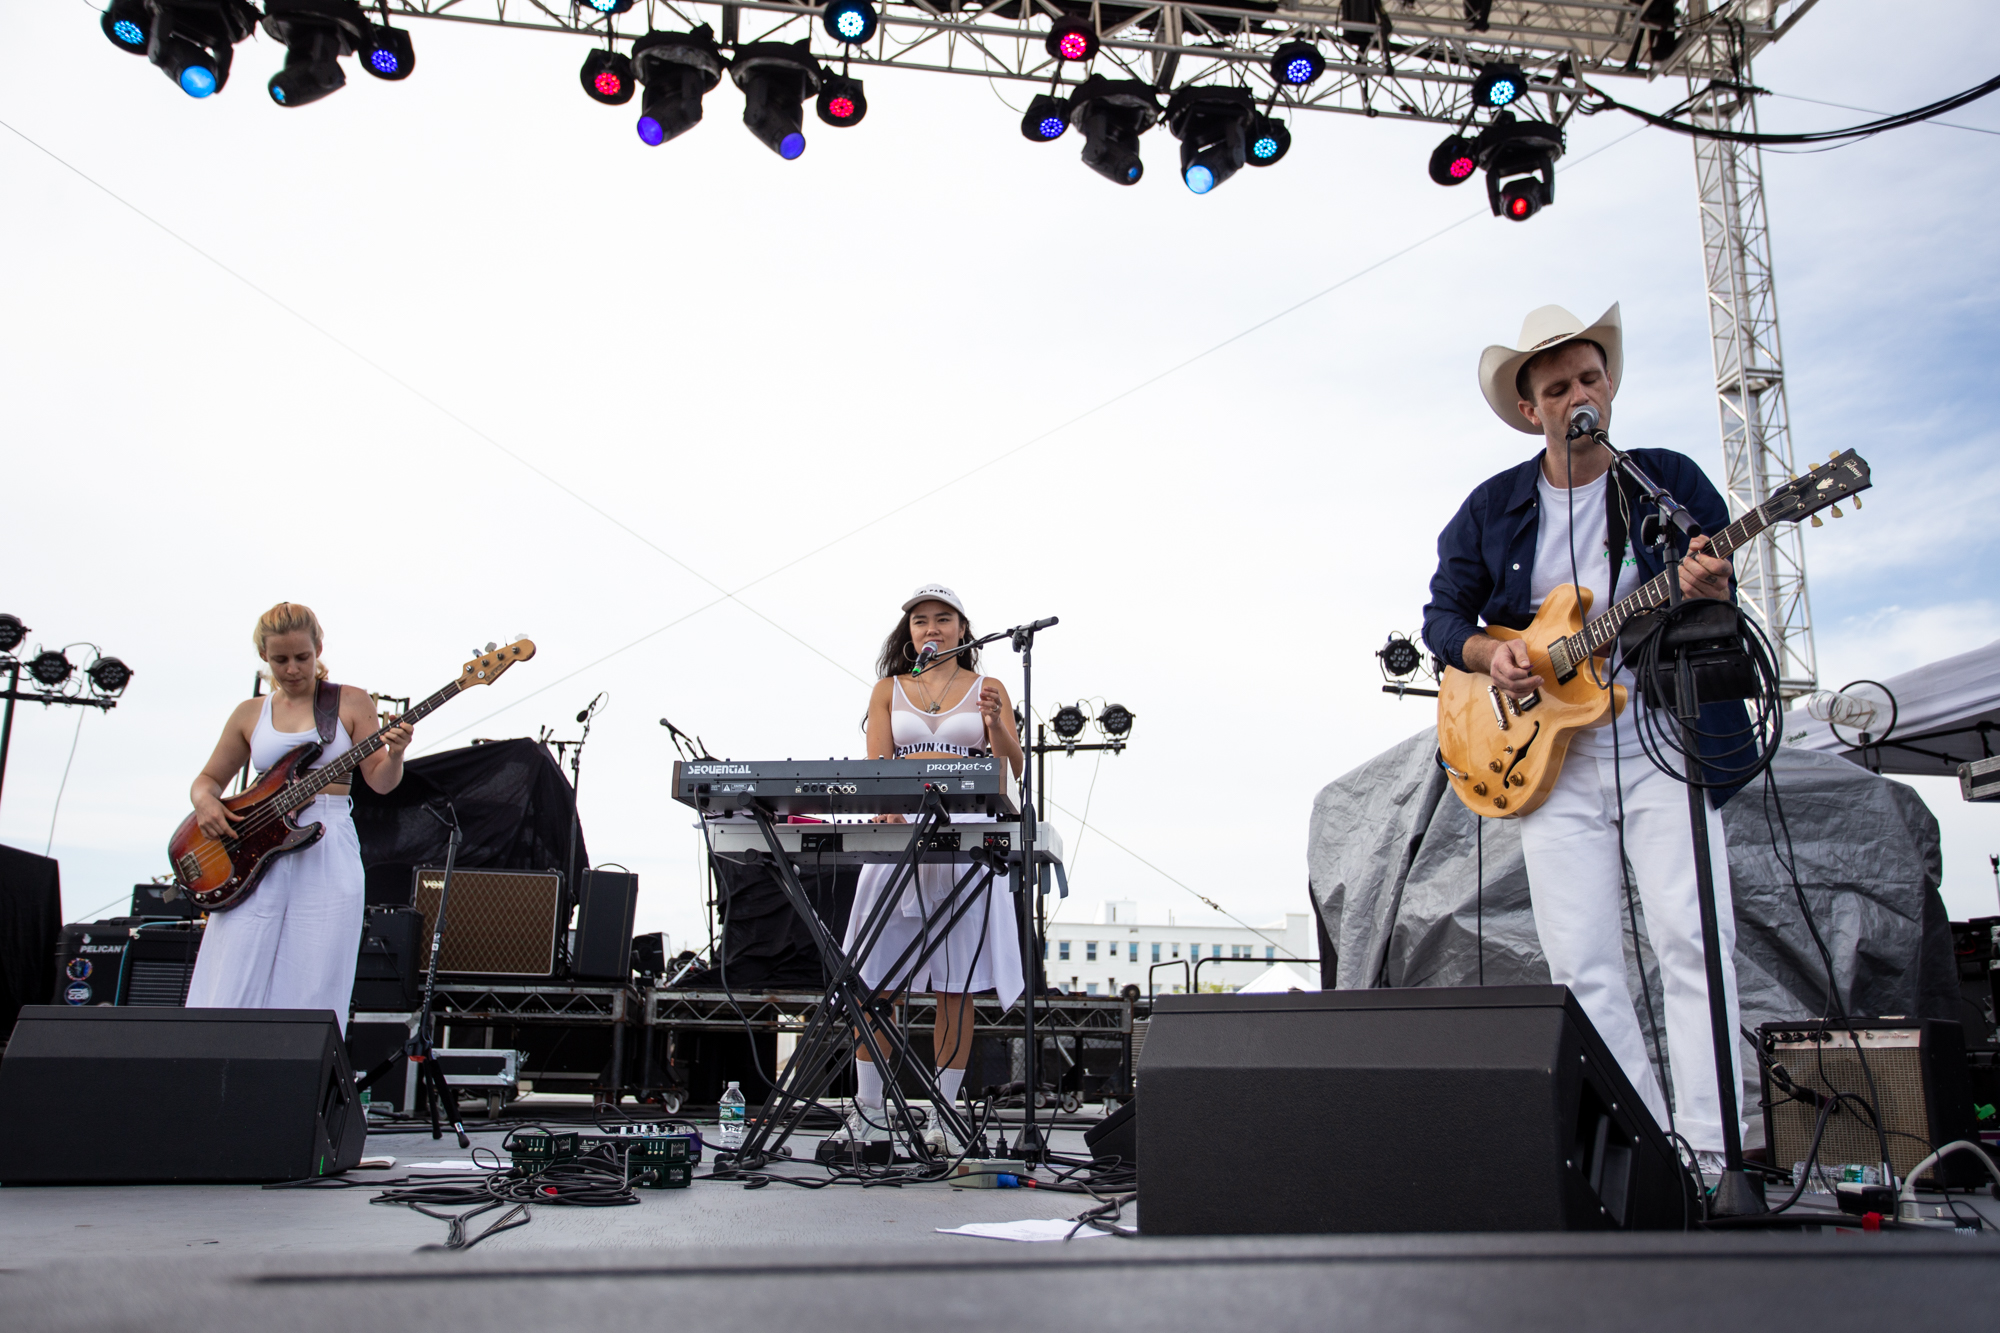 Ex-Reyes performs at Shadow of the City festival in Asbury Park, NJ on August 25, 2018.